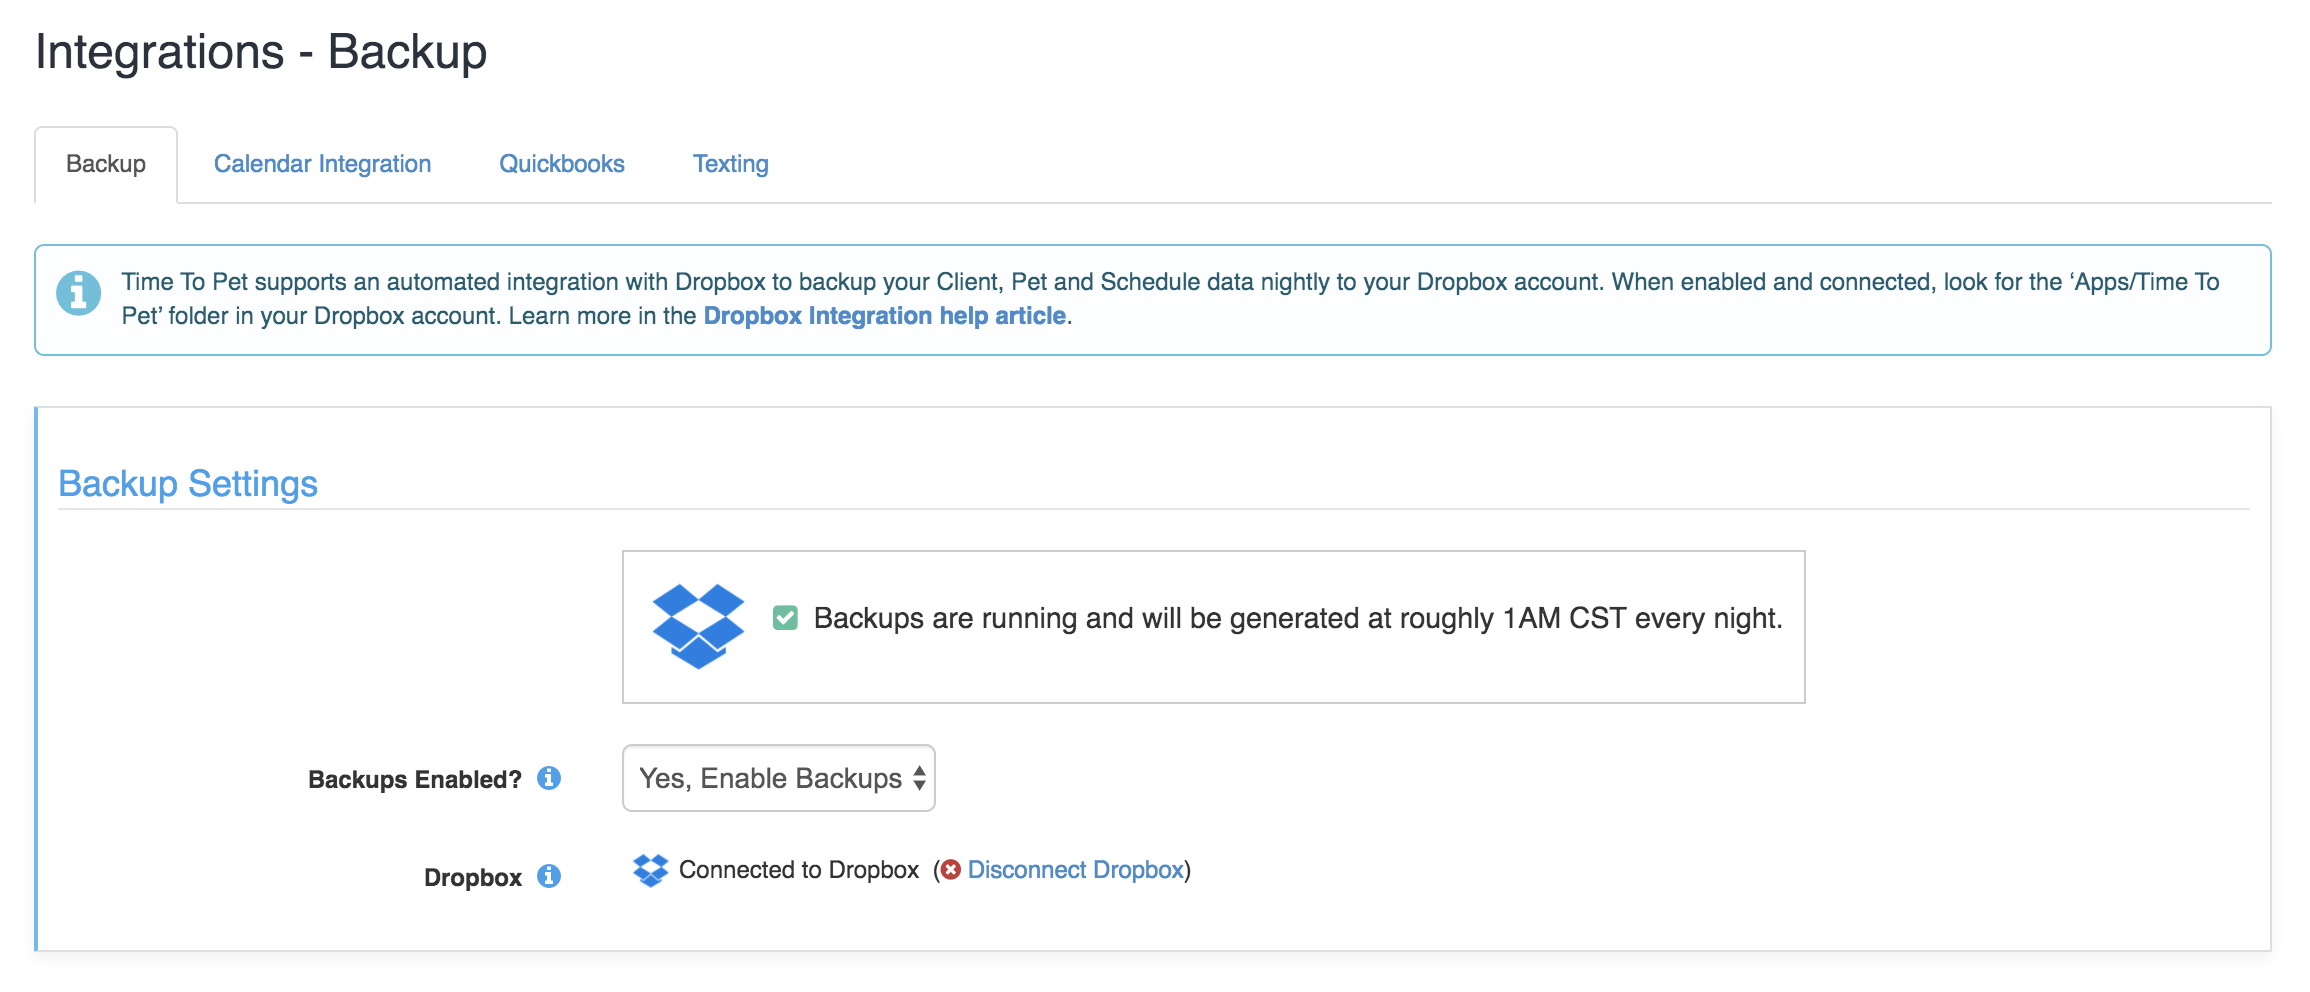 Image of integrations in settings under the Backup tab with dropbox enabled and connected